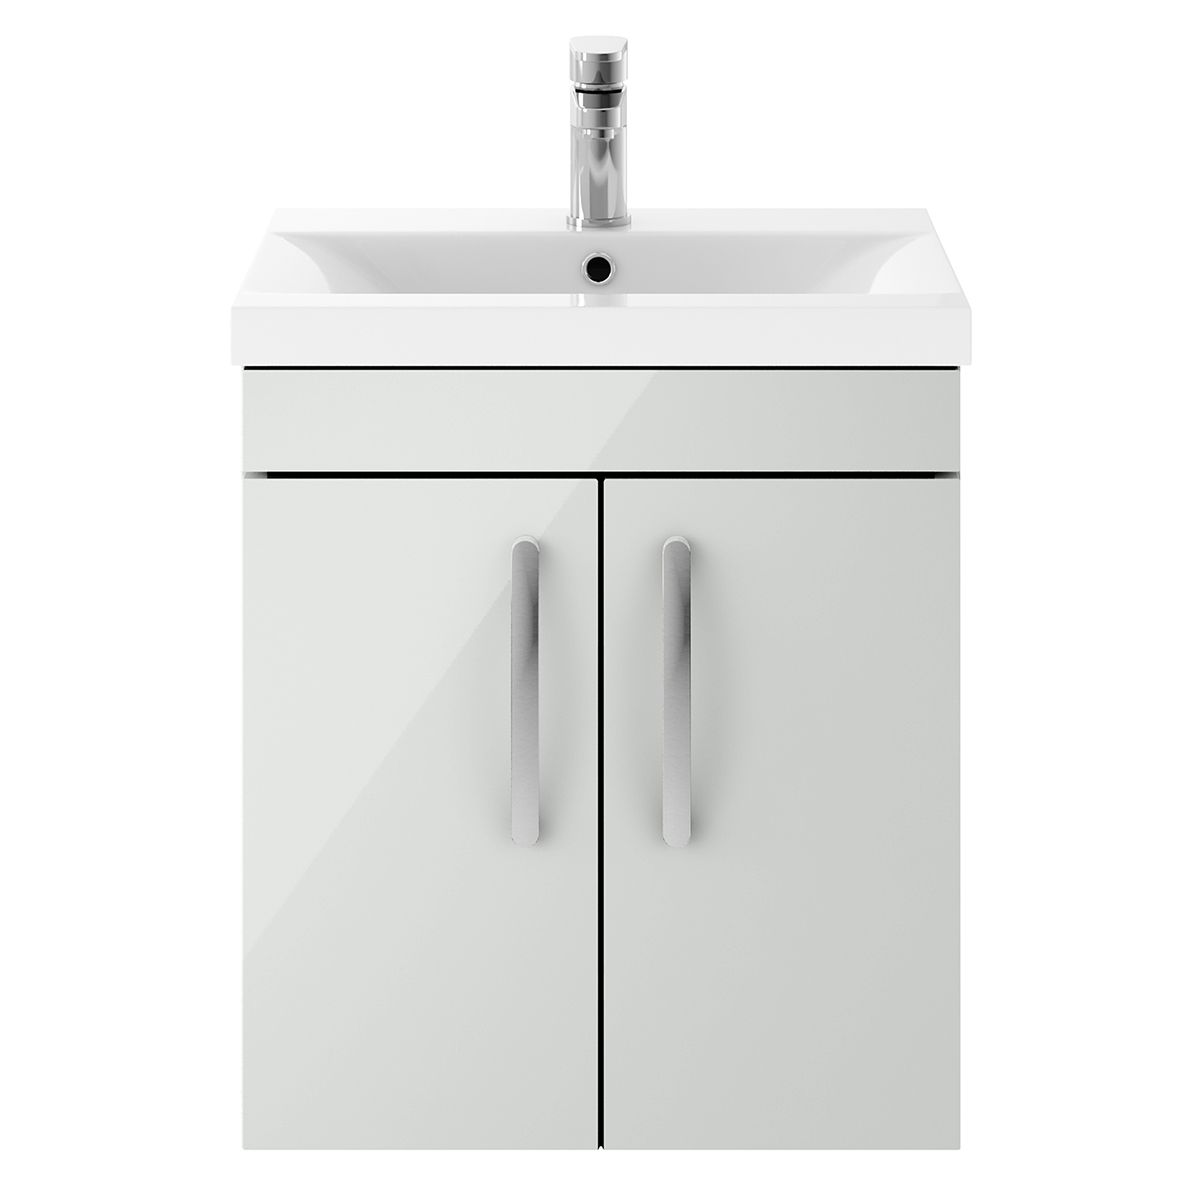 Nuie Athena Gloss Grey Mist 2 Door Wall Hung Unit 500mm with Mid Edge Basin